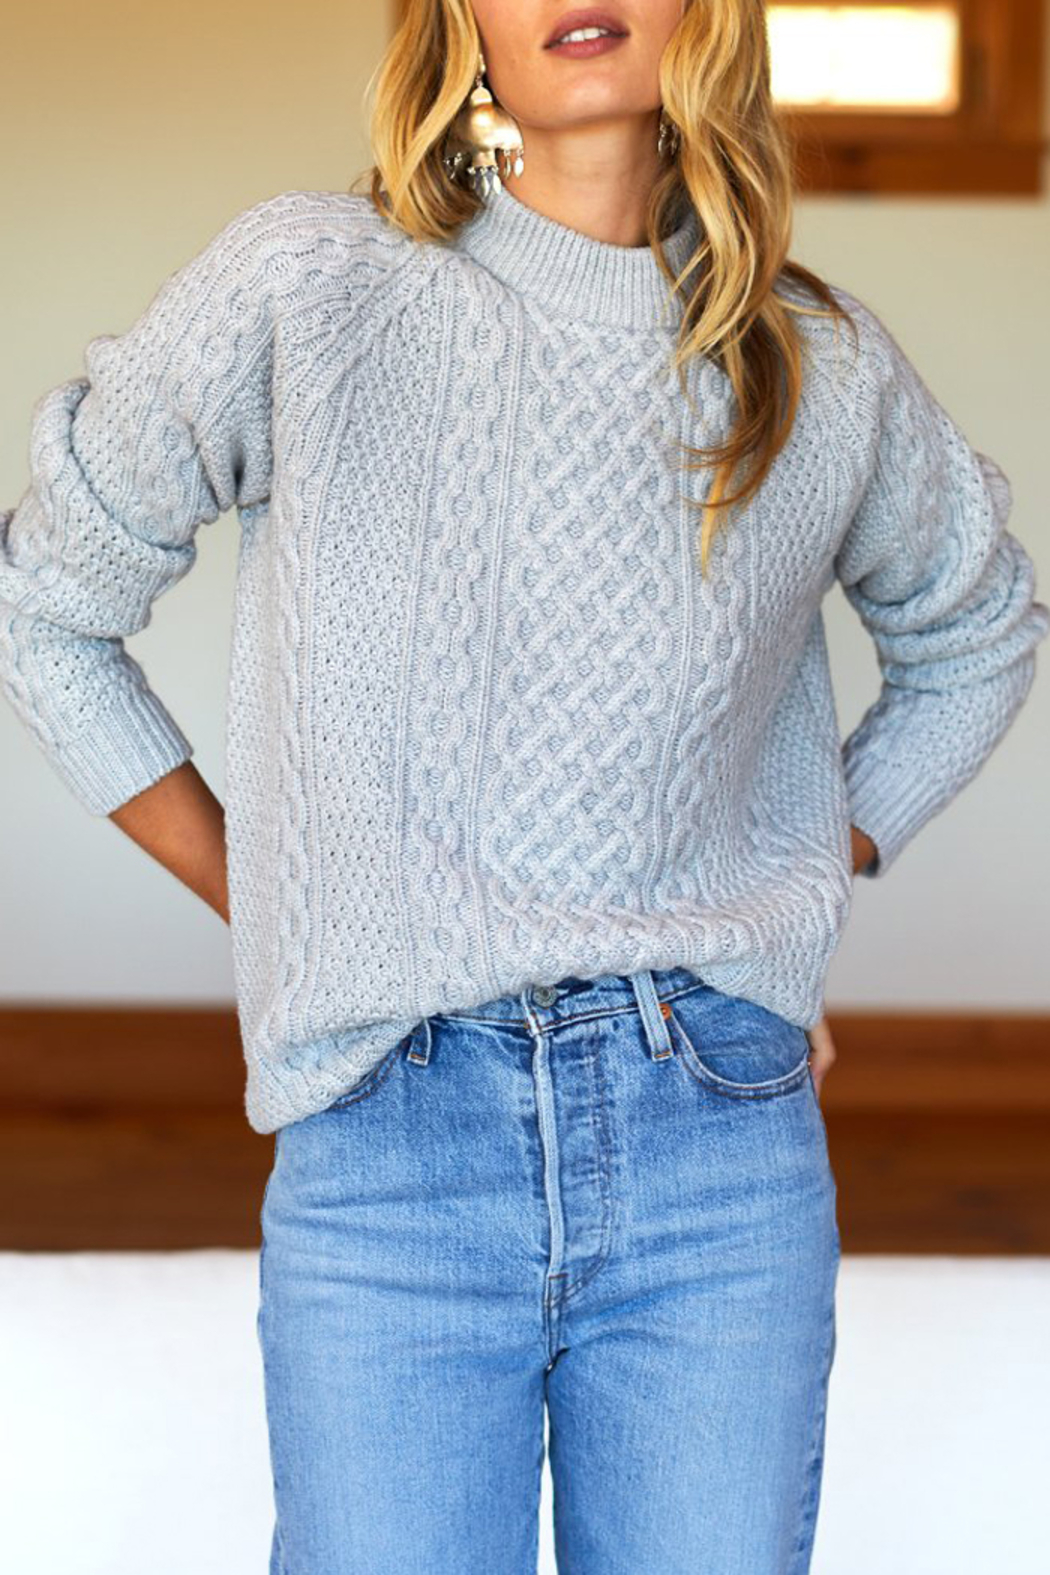 Emerson Fry Fisherman Knit Sweater - Main Image